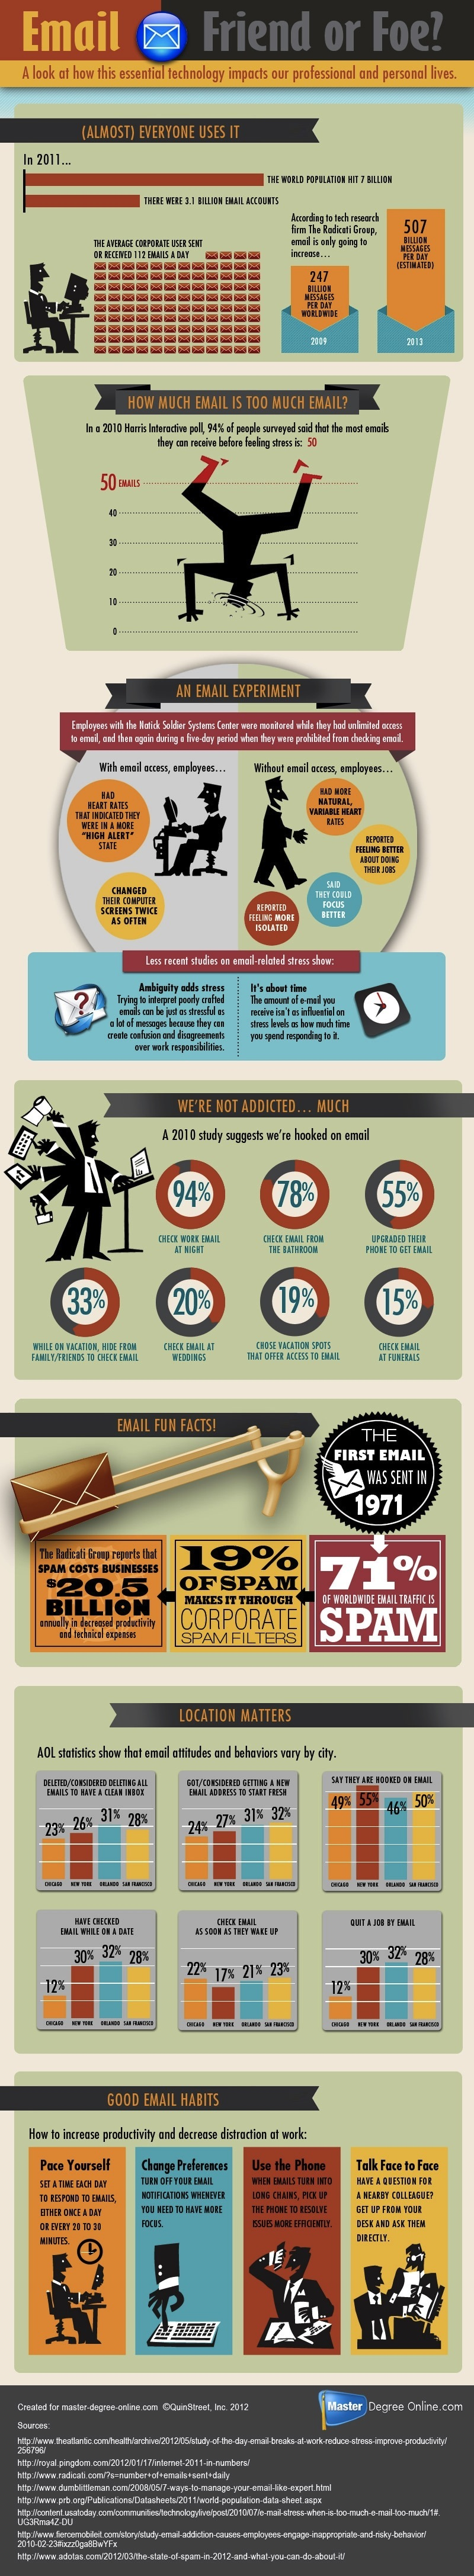 Infographic - Our Love/Hate Relationship With Email